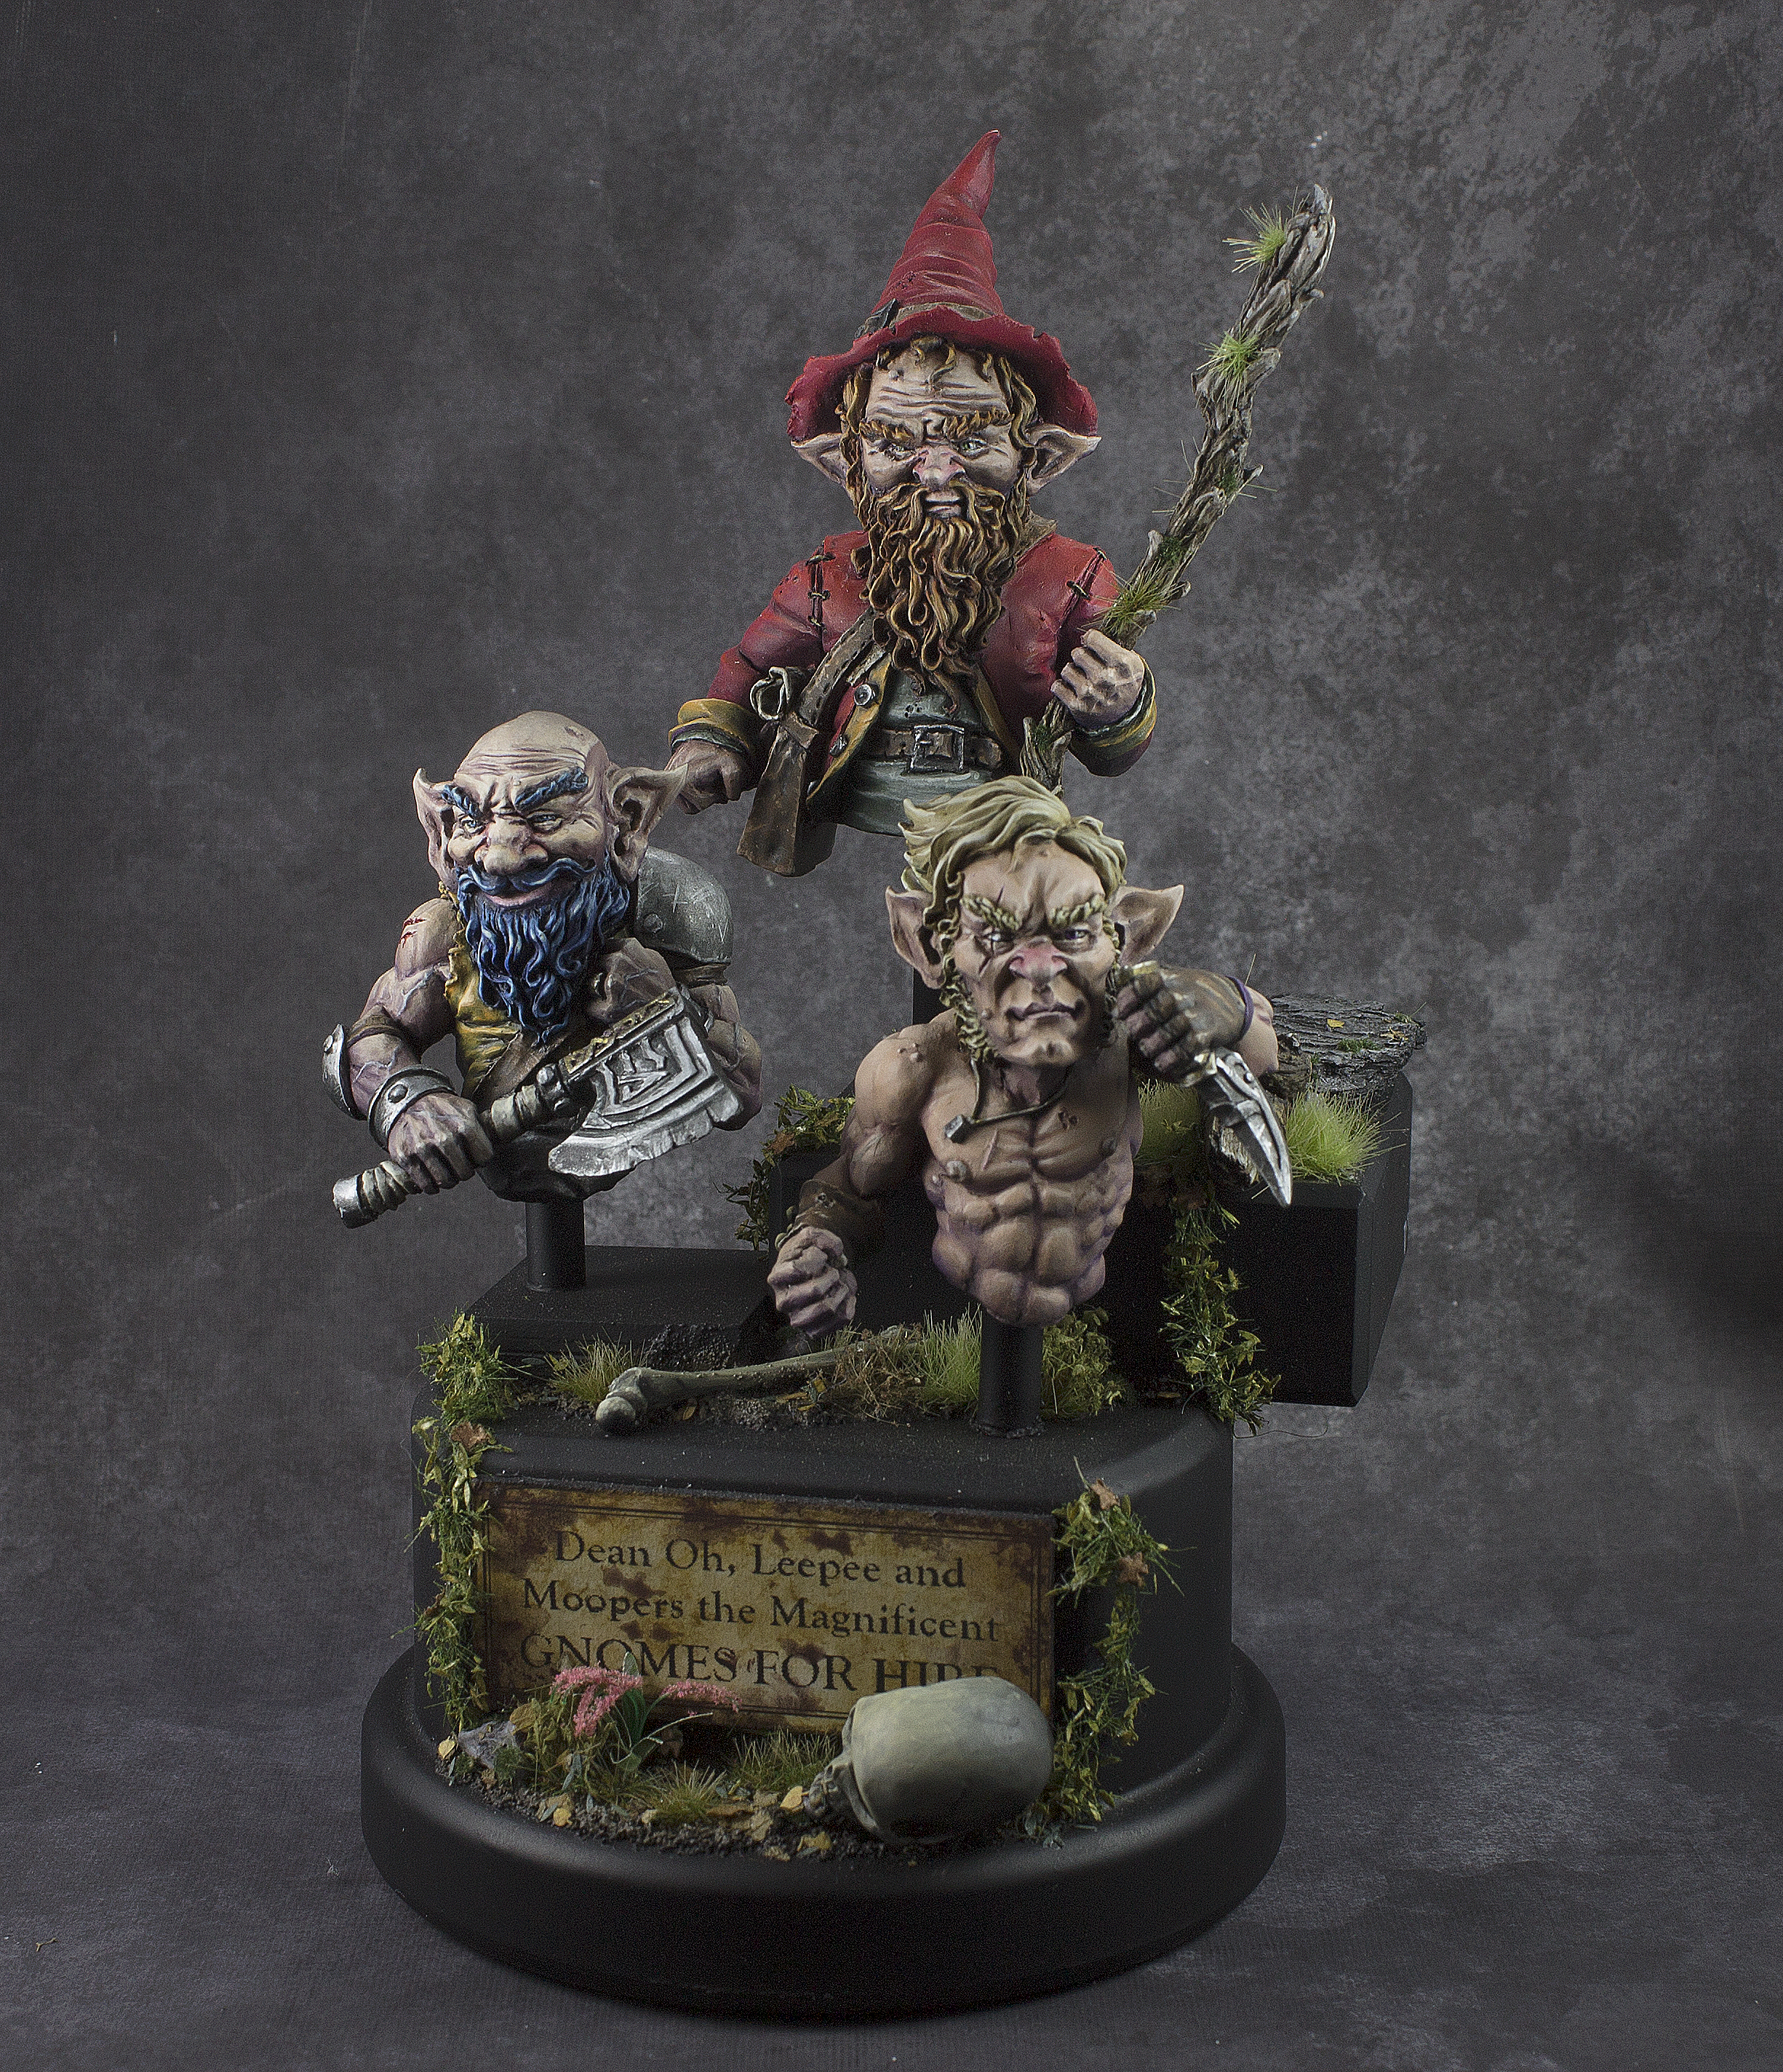 Gnomes for Hire